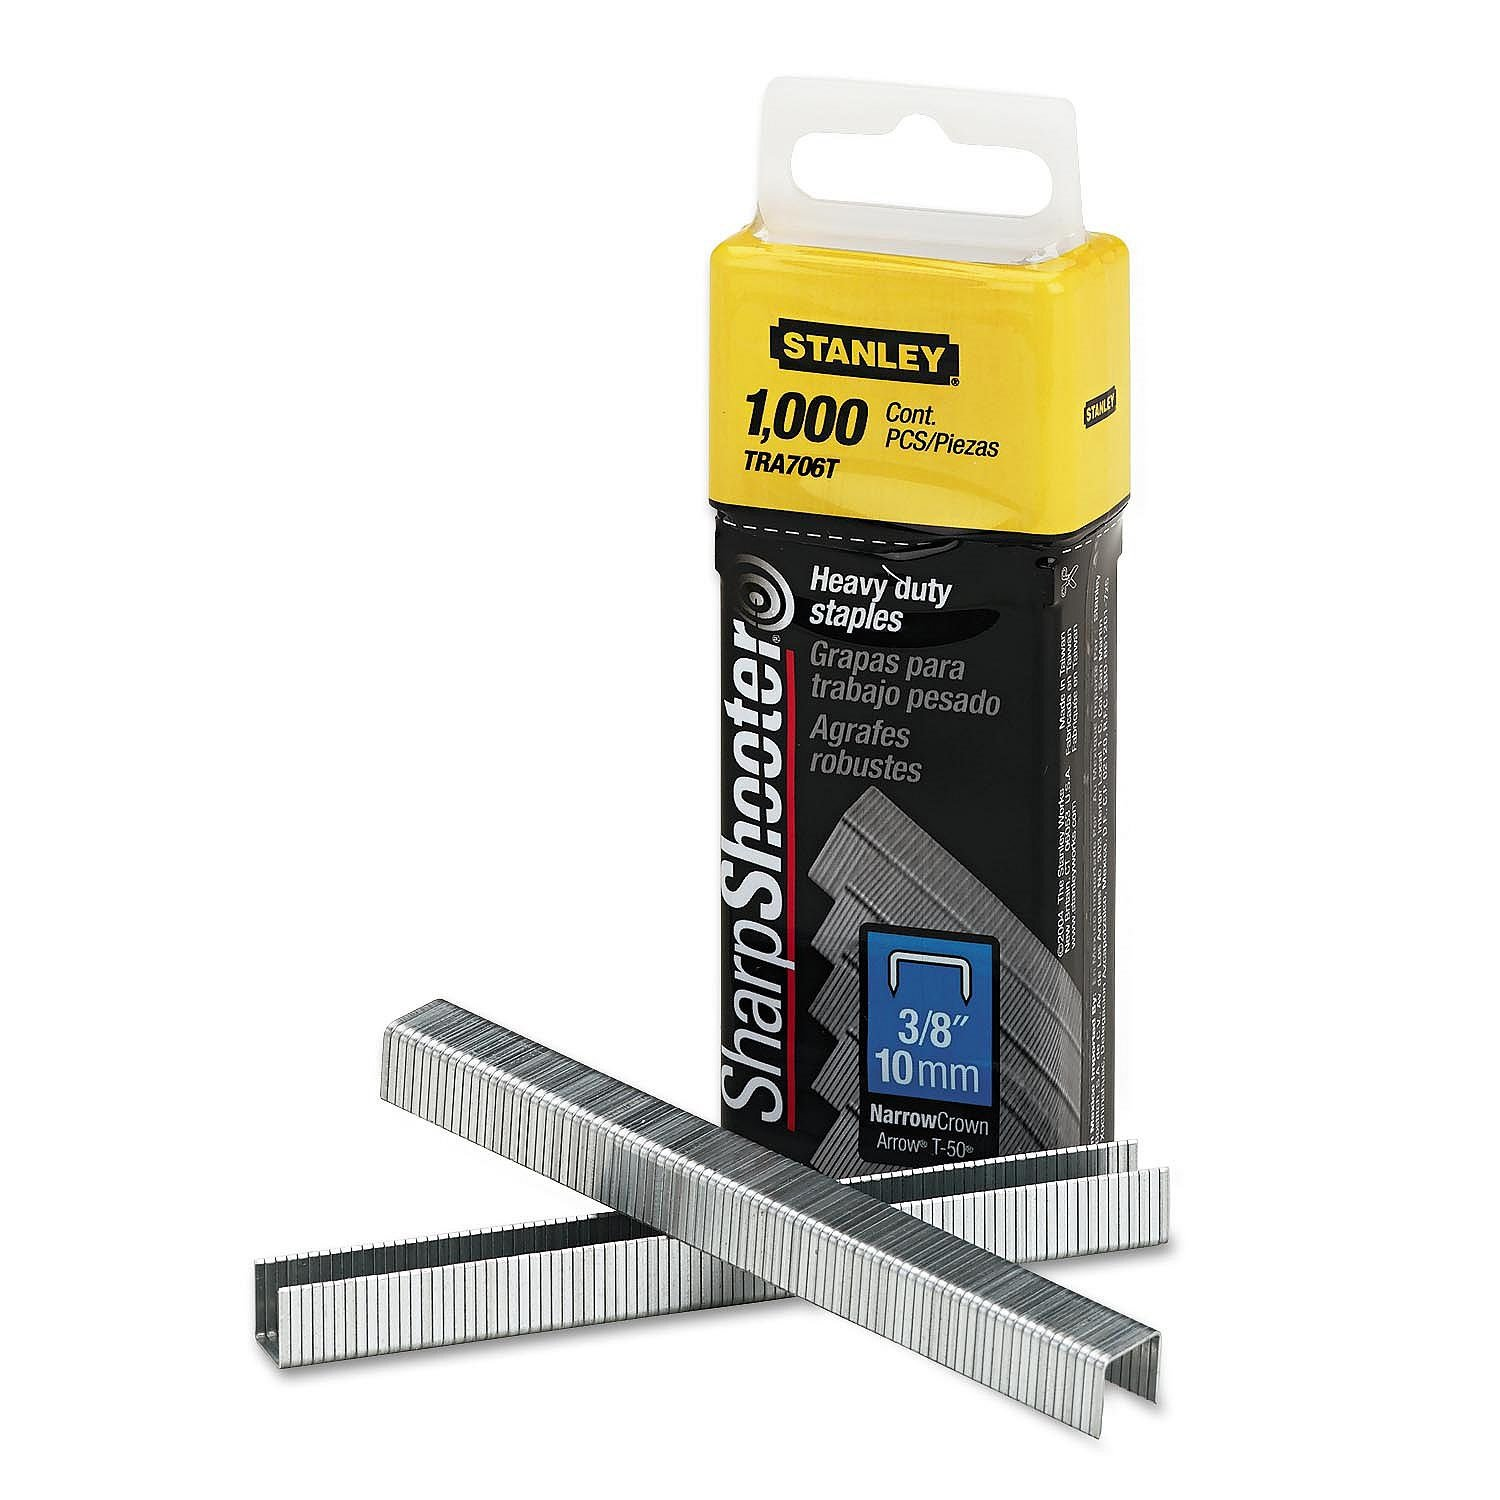 Stanley Sharpshooter Staples TRA706T 3/8 Inch Leg Length, 1000/Box, Pack of 2